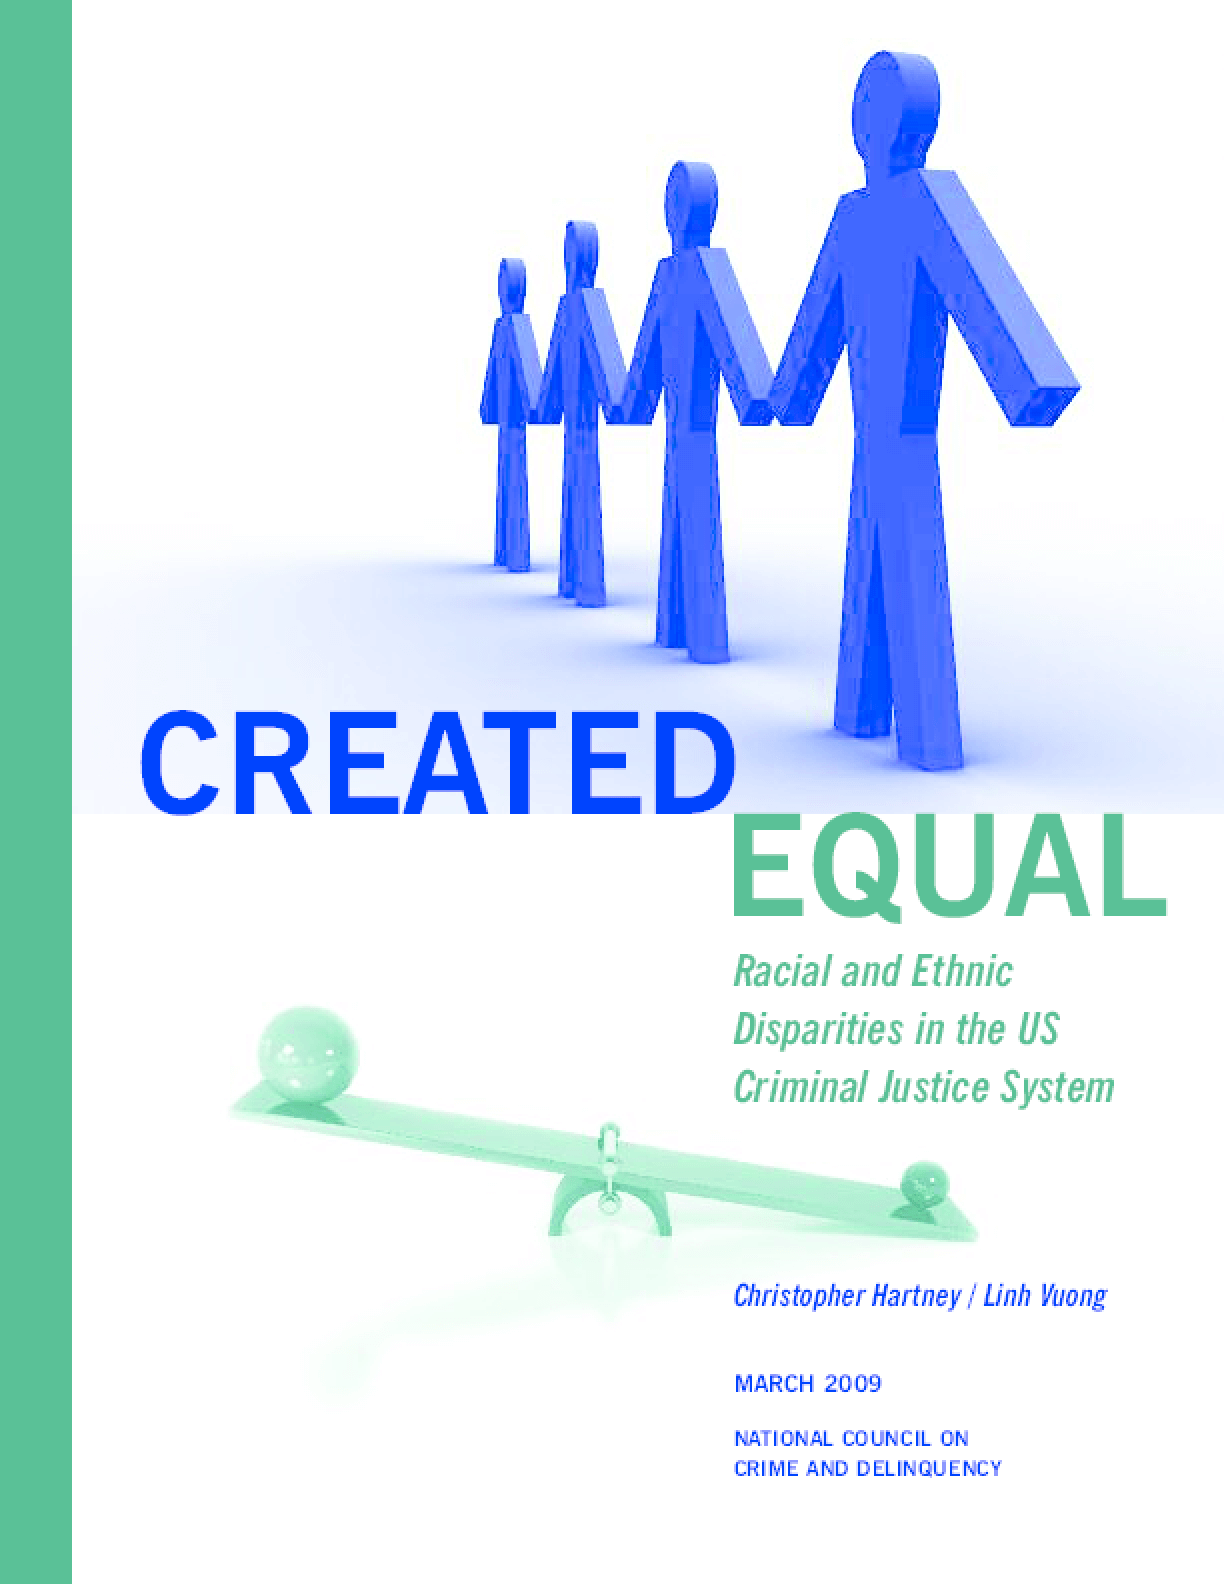 Created Equal: Racial and Ethnic Disparities in the US Criminal Justice System